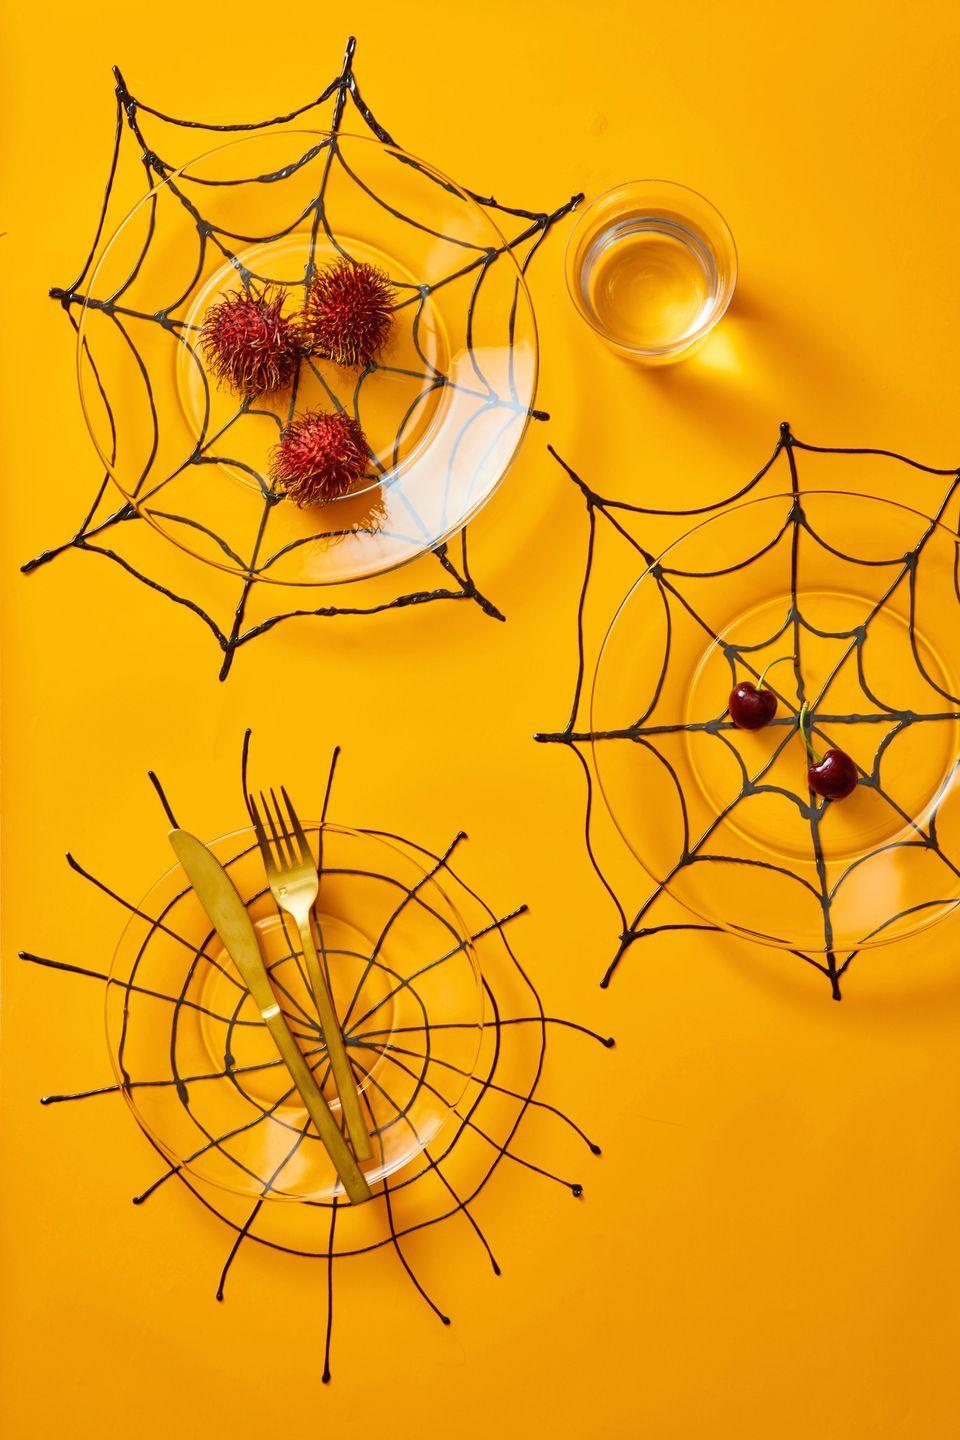 <p>Decorate the table with DIY placemats made out of puff paint and parchment paper. Using the puff pant, make a web shape onto the parchment paper. Let it dry and set overnight, so you can peel the paper off the back. Place it underneath a clear plate to show off your handwork. </p>